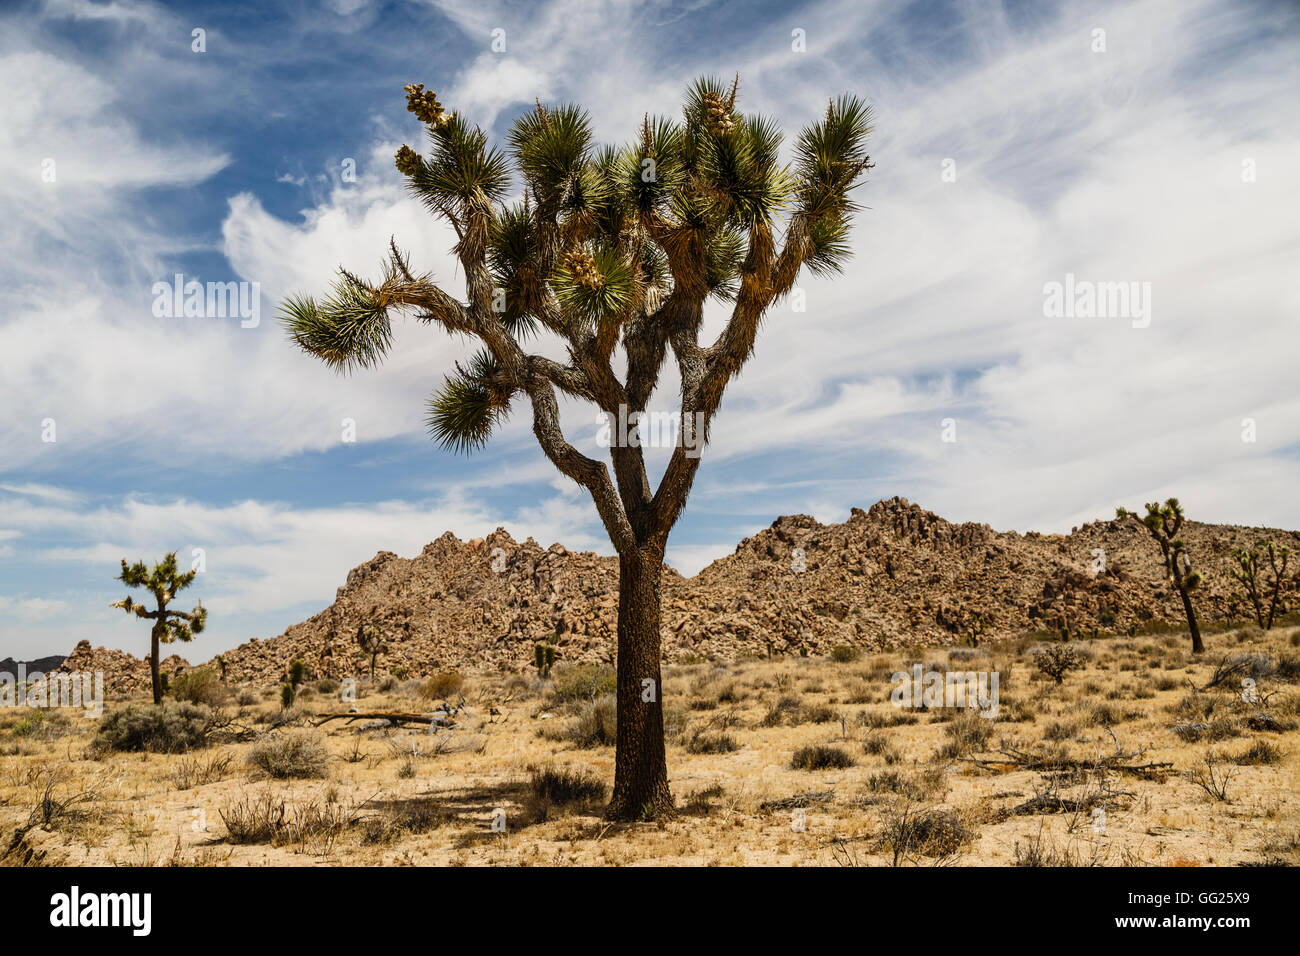 Joshua Tree National Park, California, USA Stock Photo